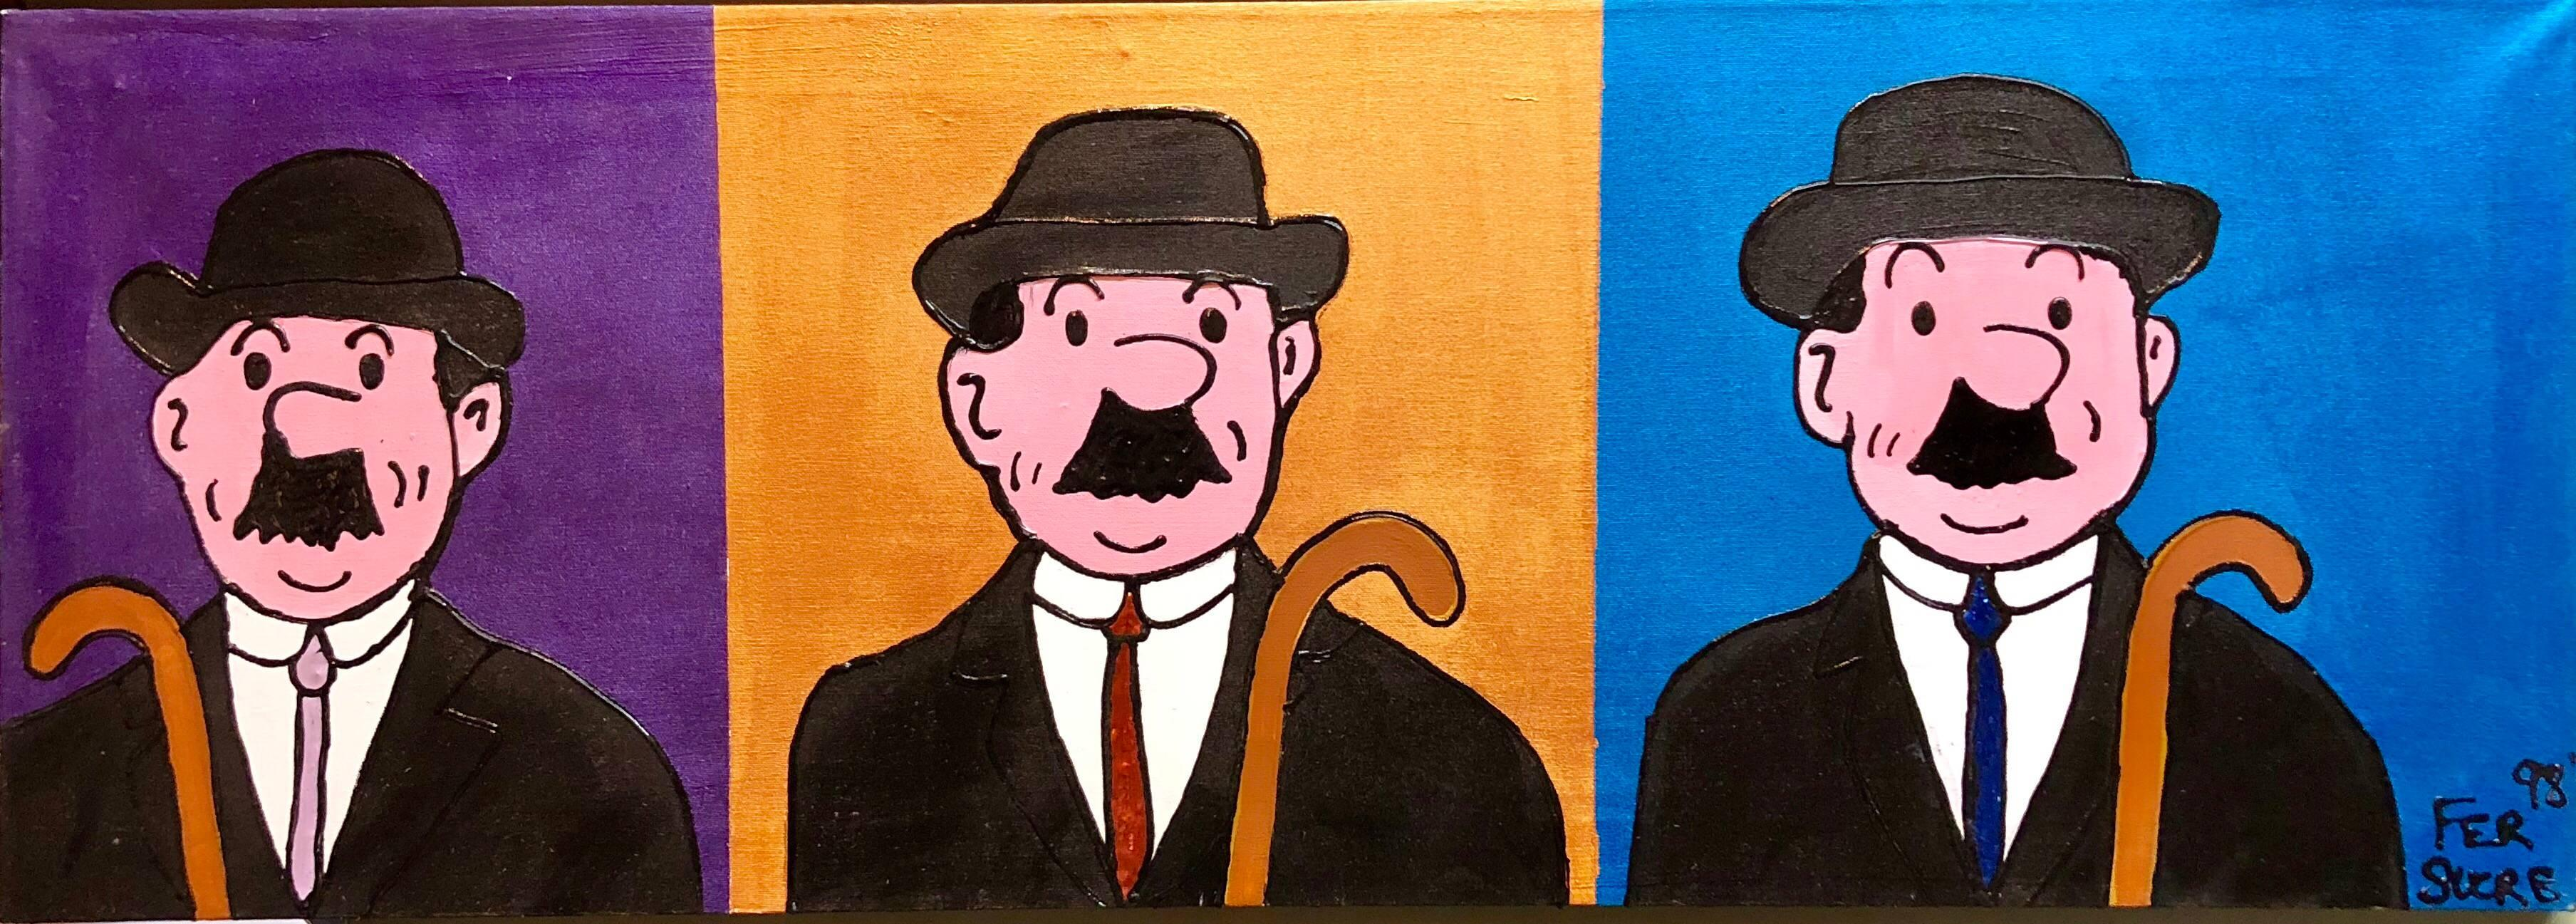 Pop Art Acrylic Painting 'Detectives' from the Tintin Comic books